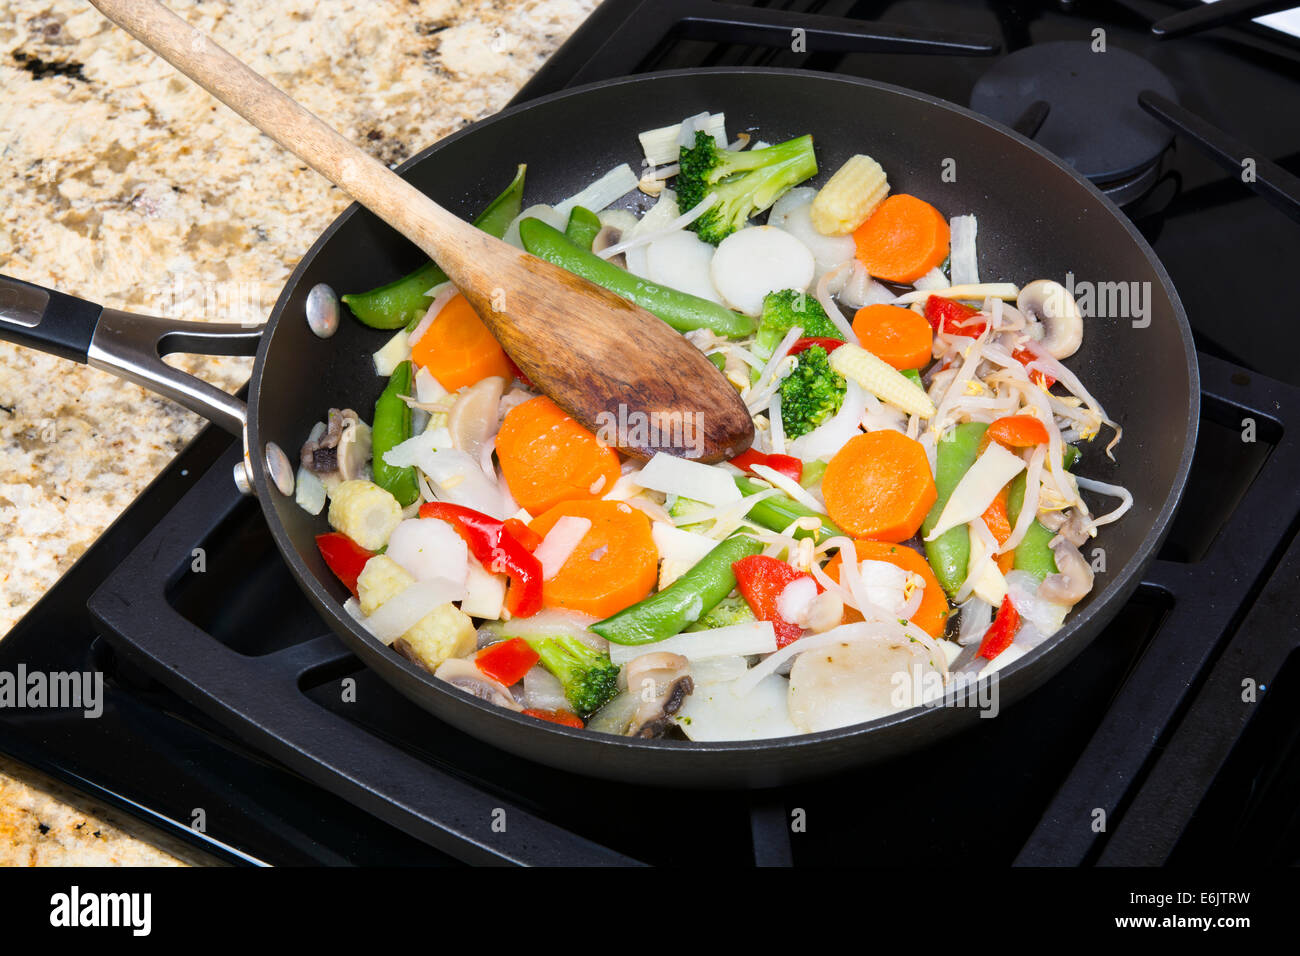 Fresh mixed vegetable stir fry with onions, carrots, snow peas, red peppers, and sprouts simmering in a stove top - Stock Image